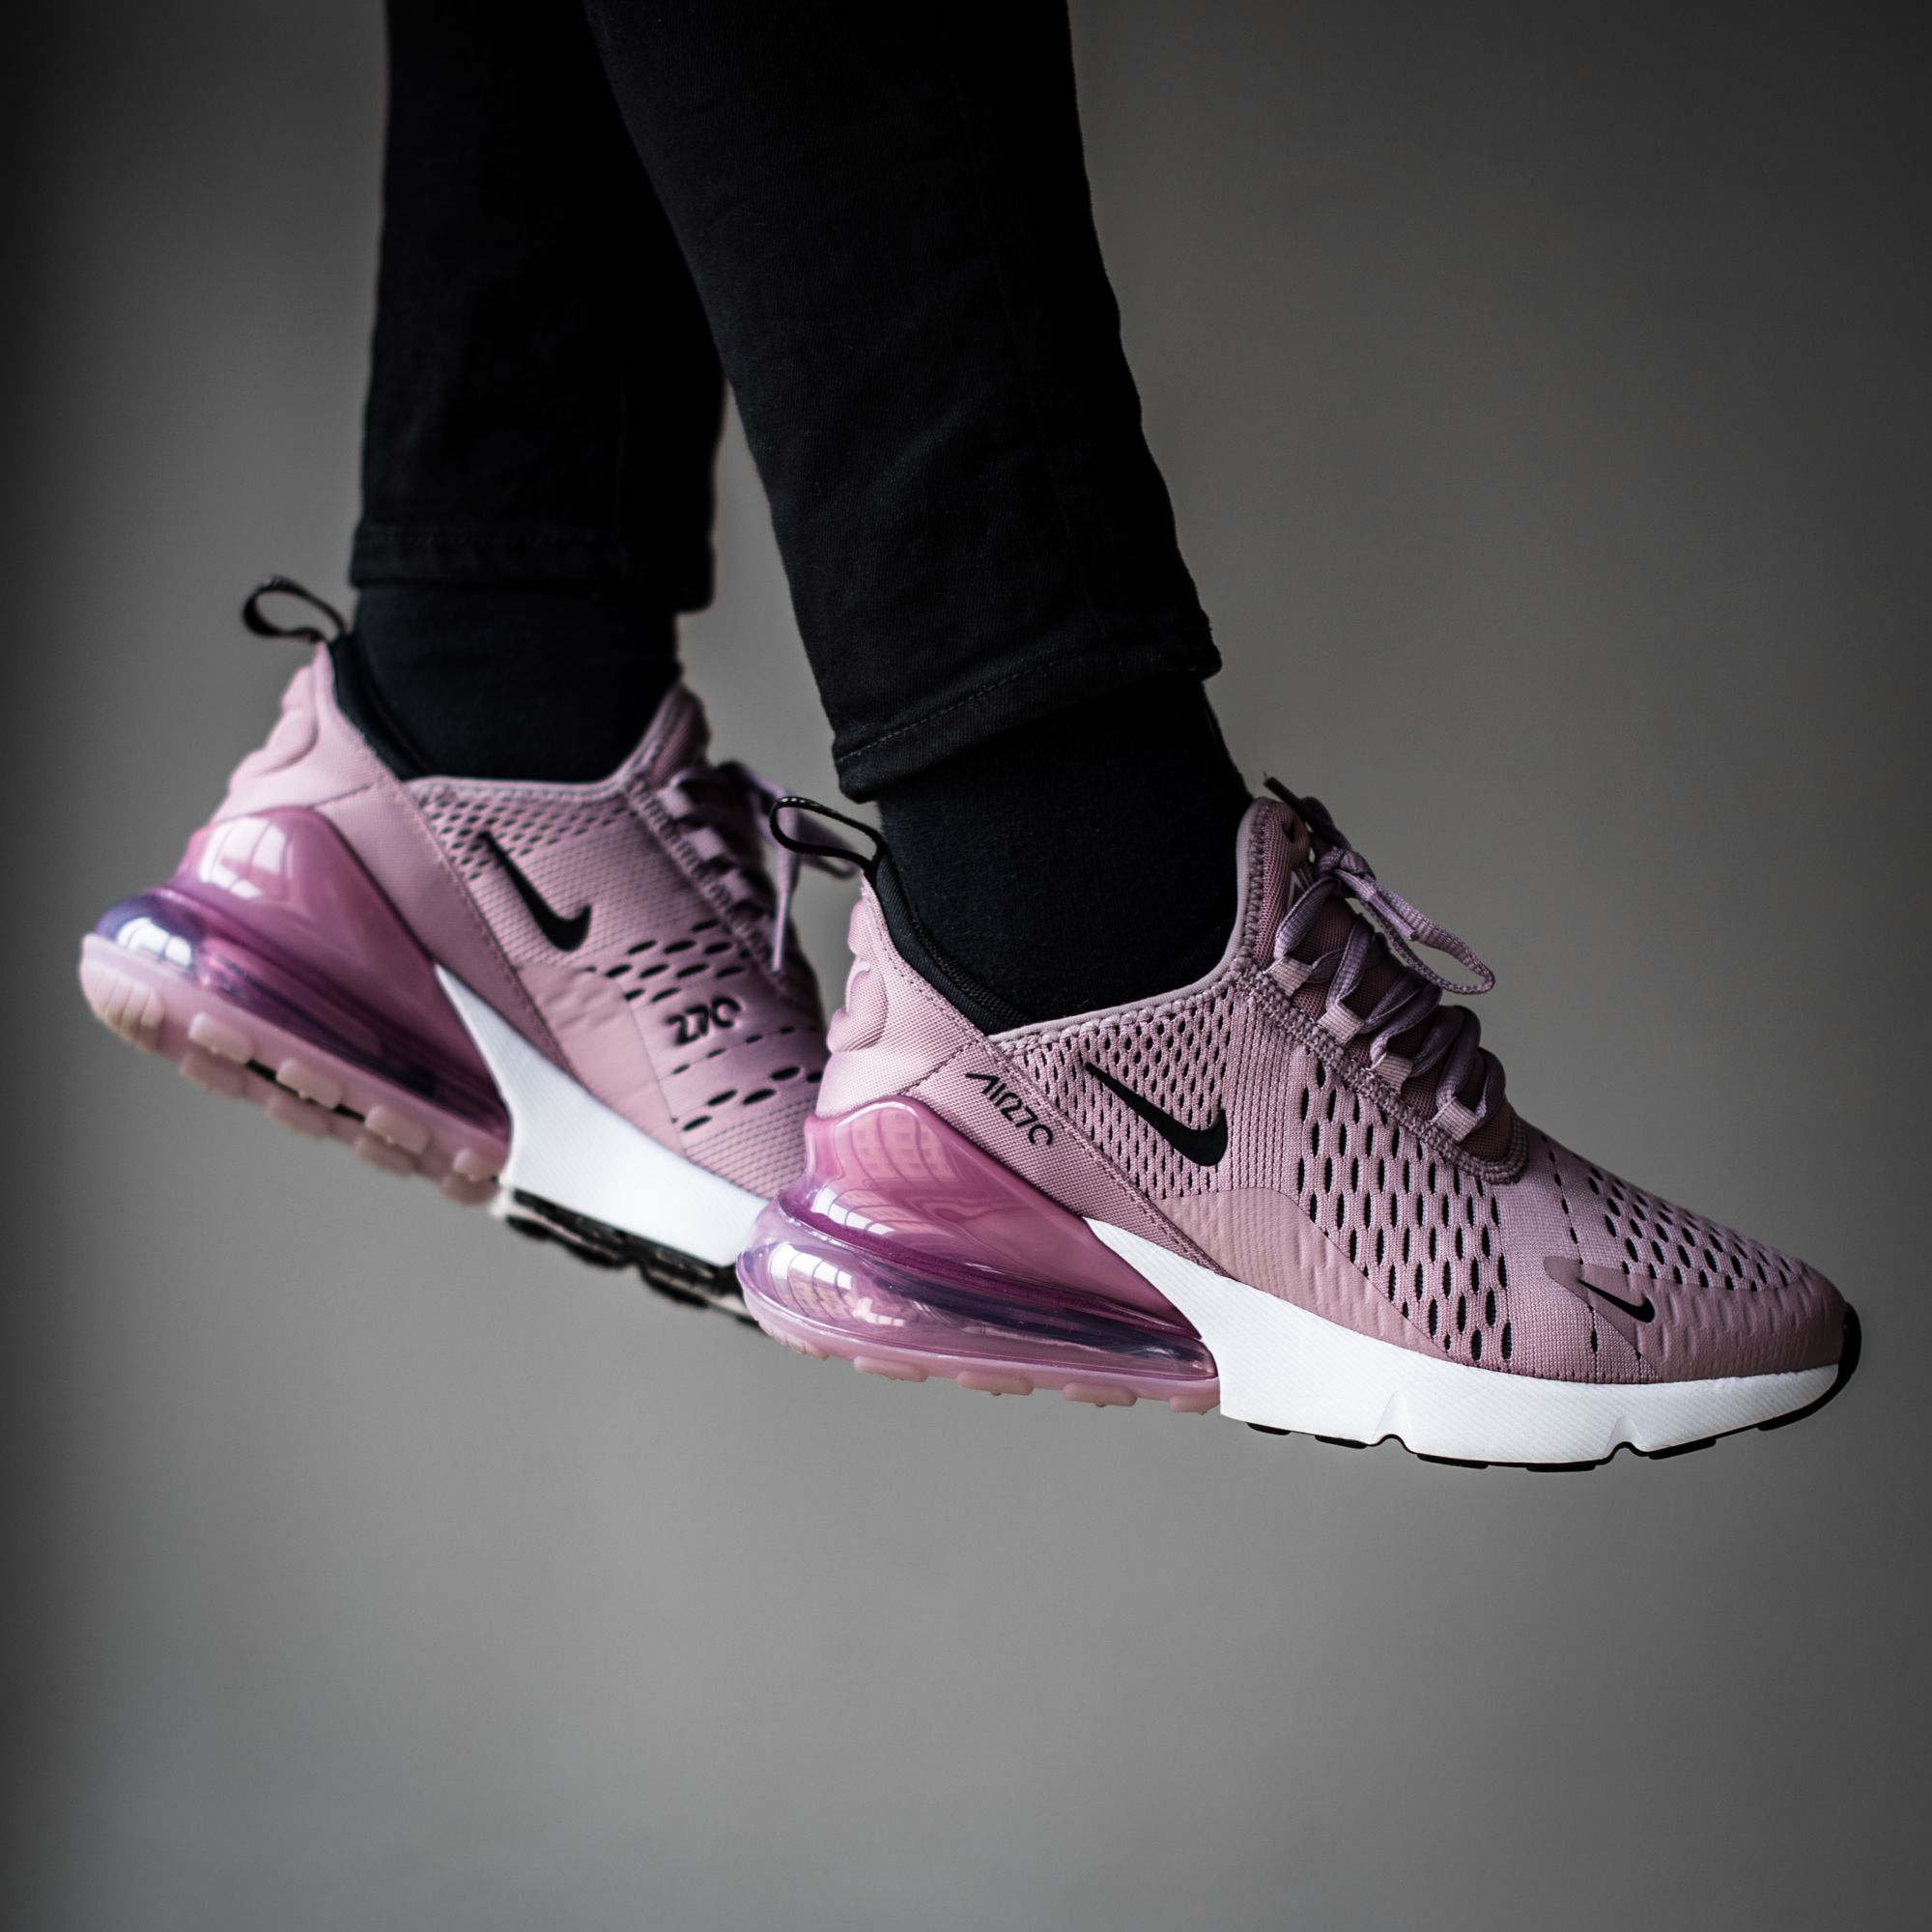 sports shoes 648e1 a4cd6 The Air Max 270 in a purple coloring is soon available on ...